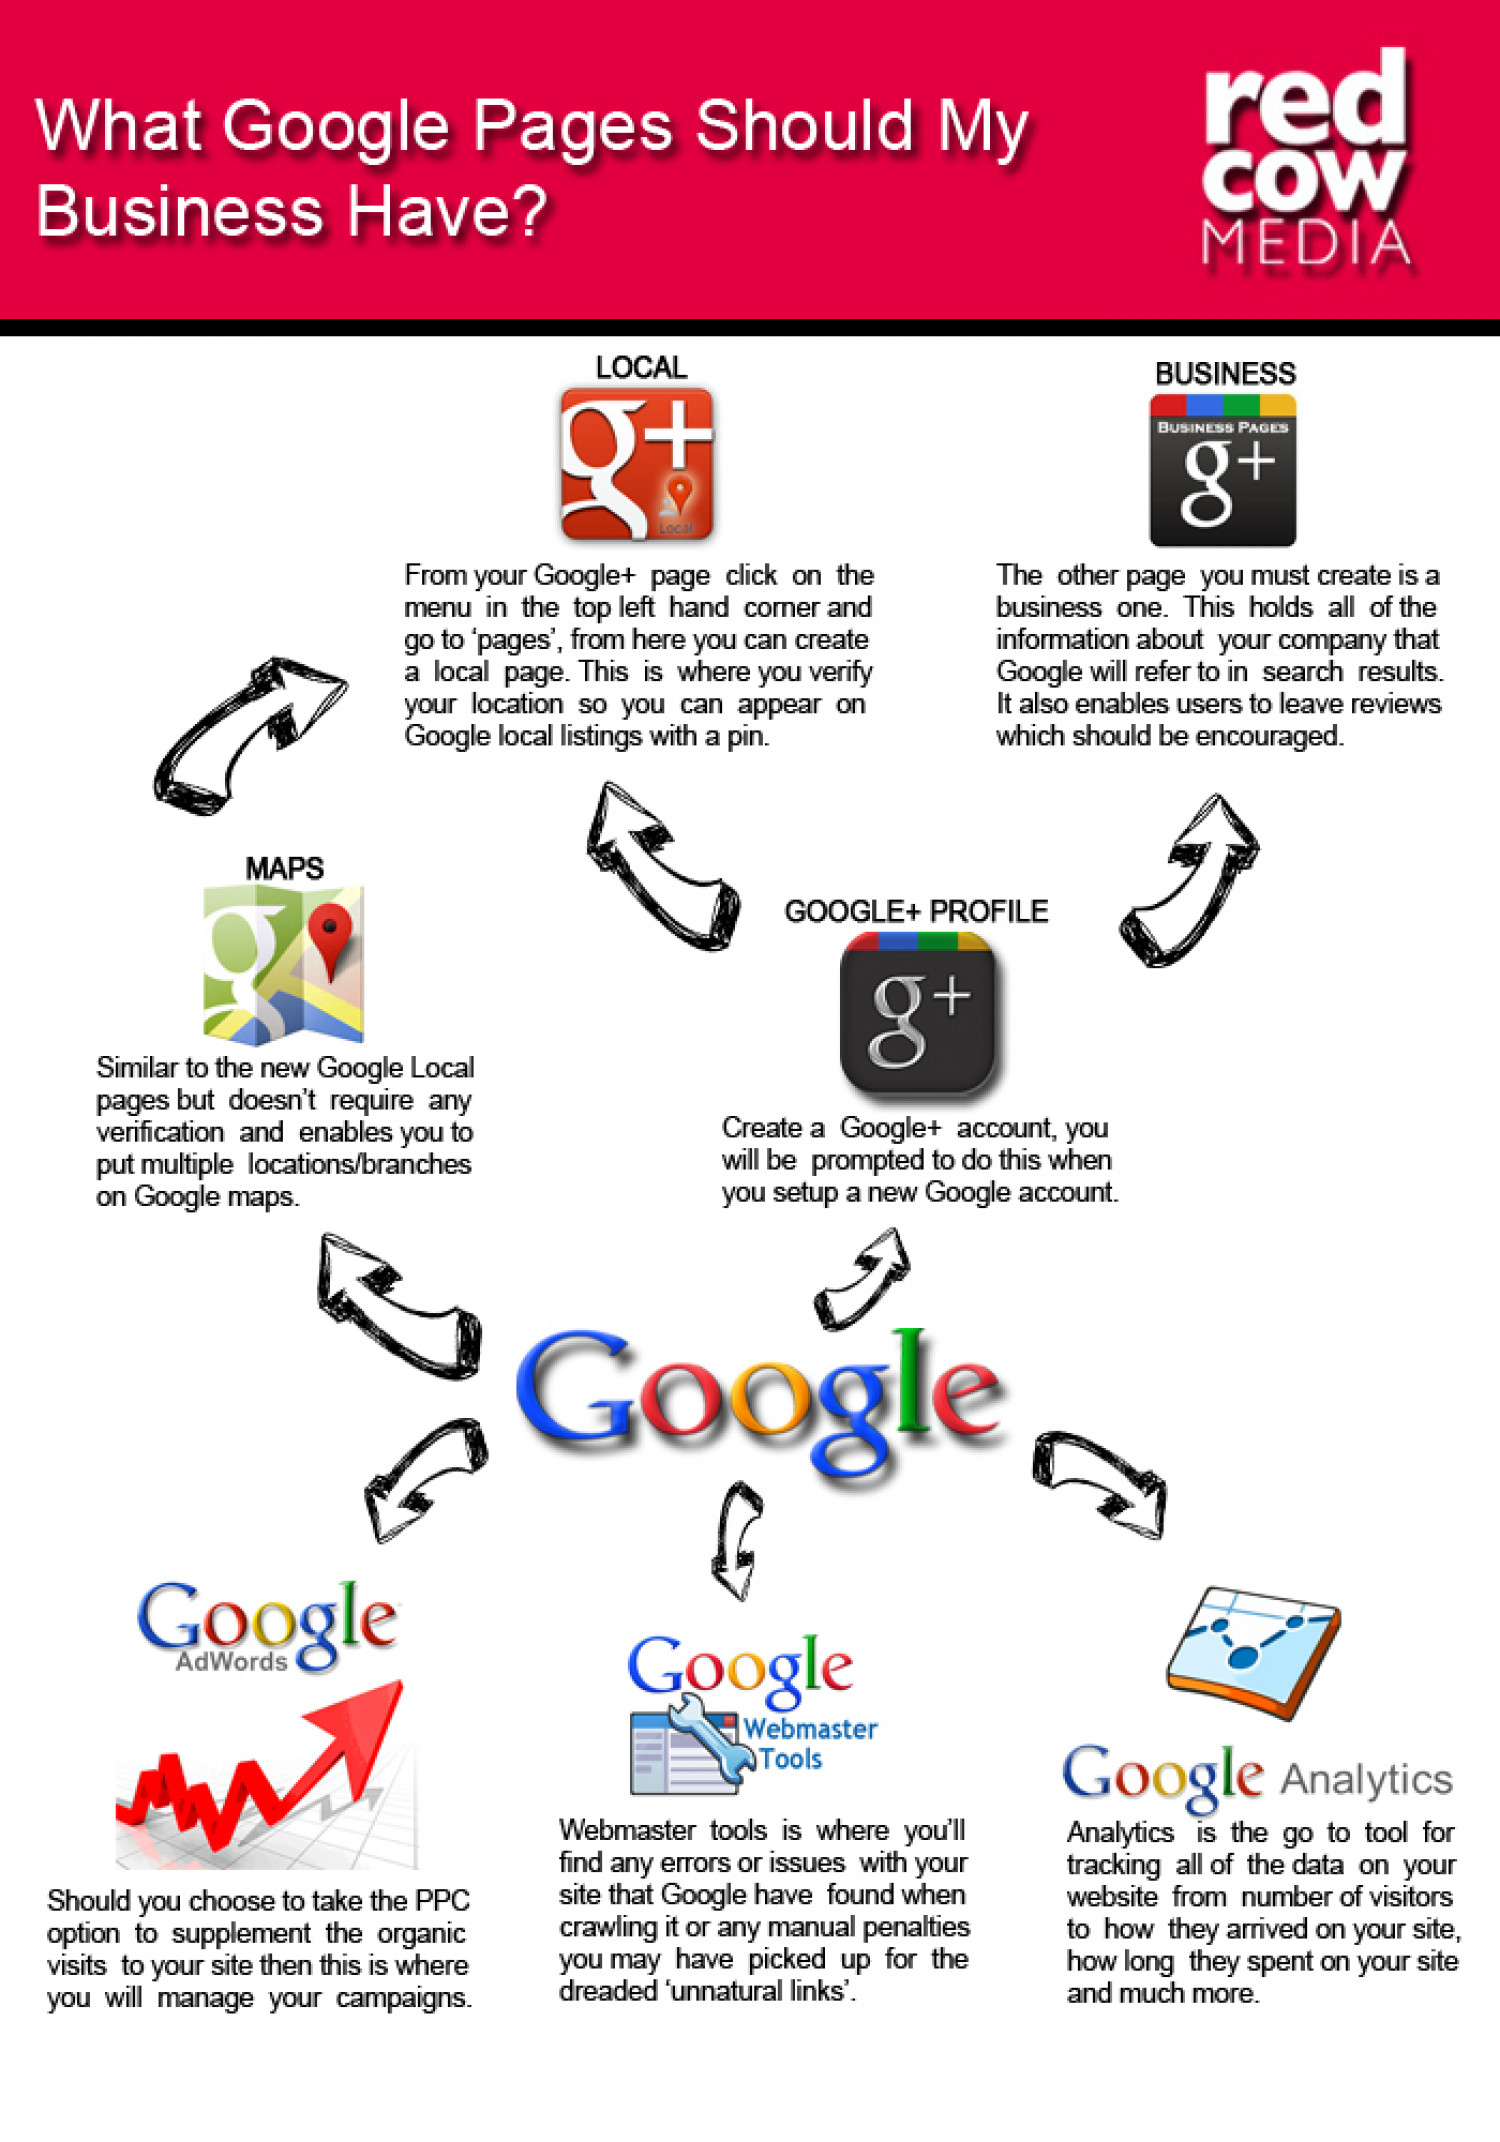 What Google Pages Should My Business Have? Infographic